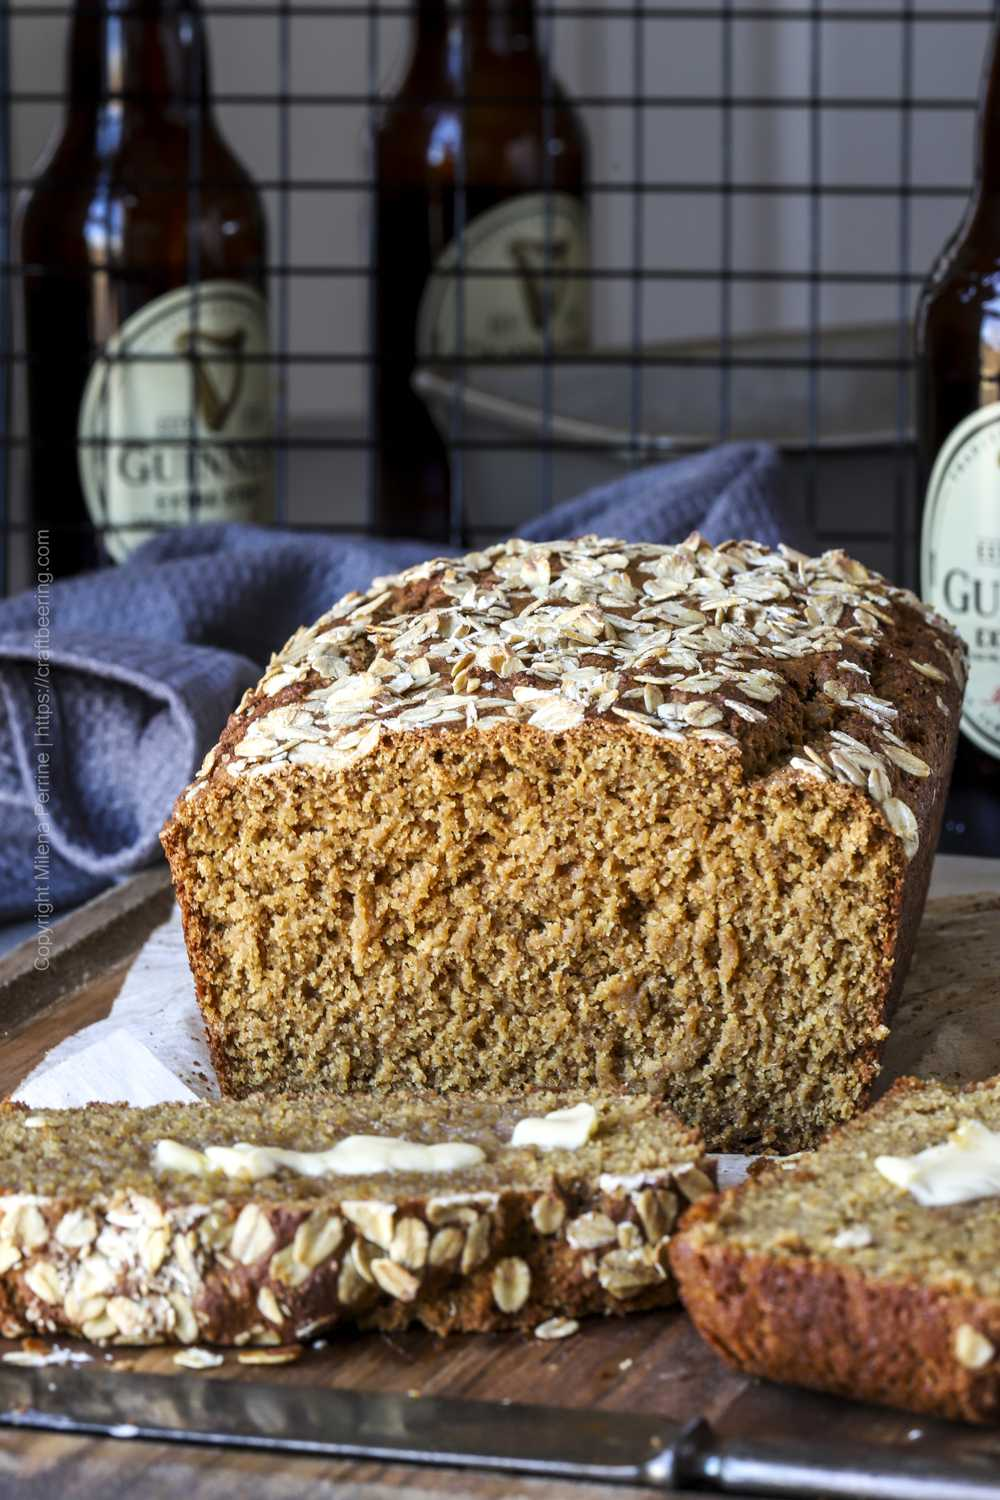 Guinness Irish brown bread, sliced and slathered with Irish butter.